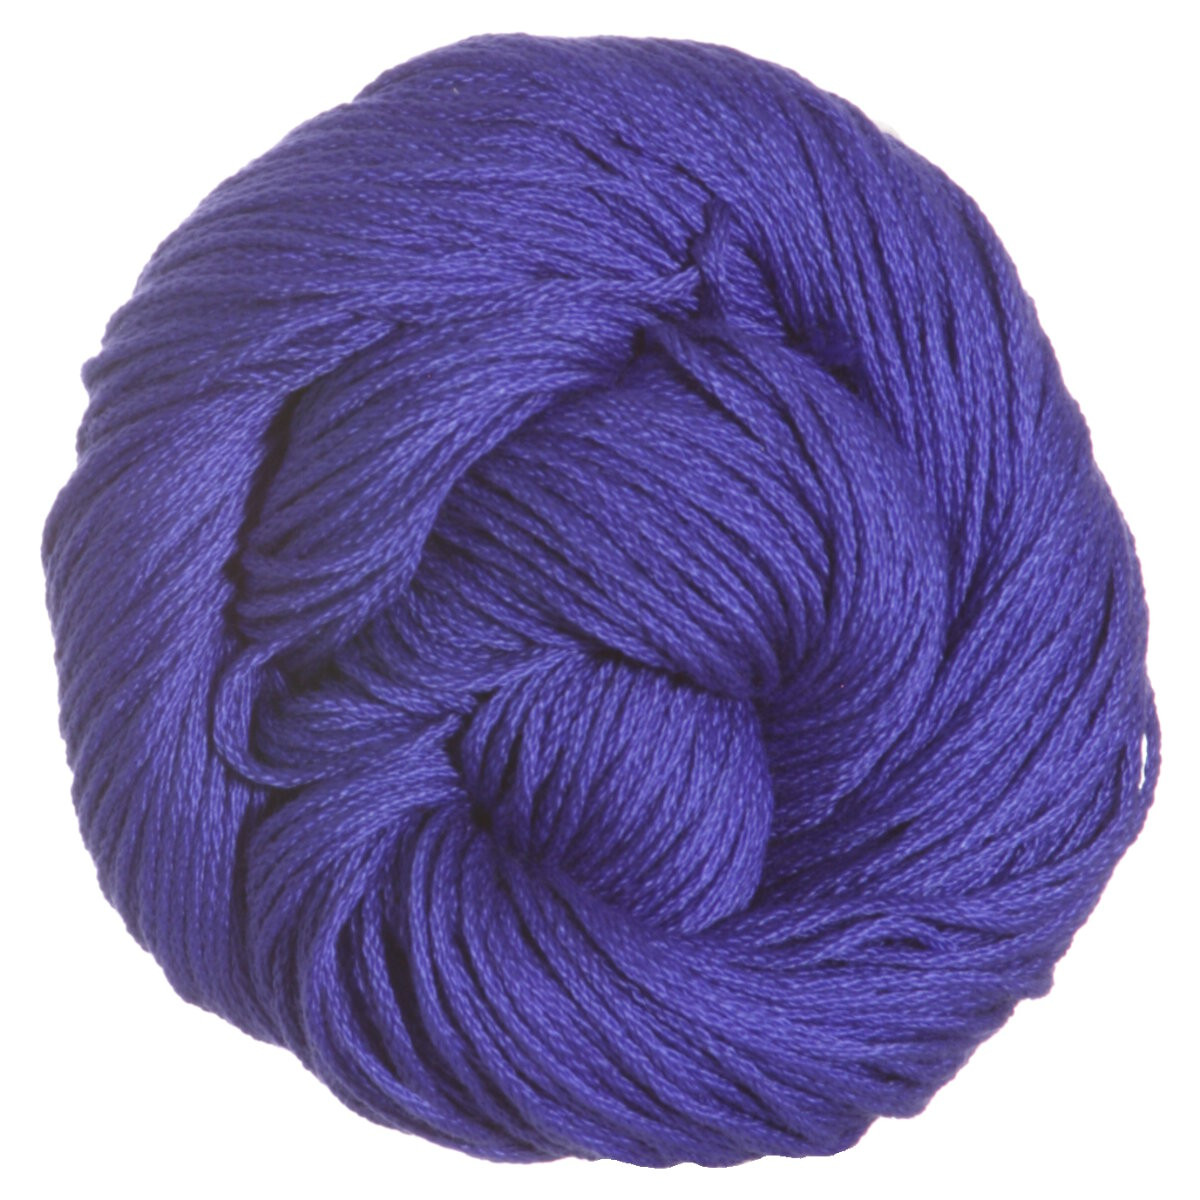 Tahki Cotton Classic Inspirational Tahki Cotton Classic Yarn 3872 Dk Periwinkle at Jimmy Of Incredible 46 Pictures Tahki Cotton Classic